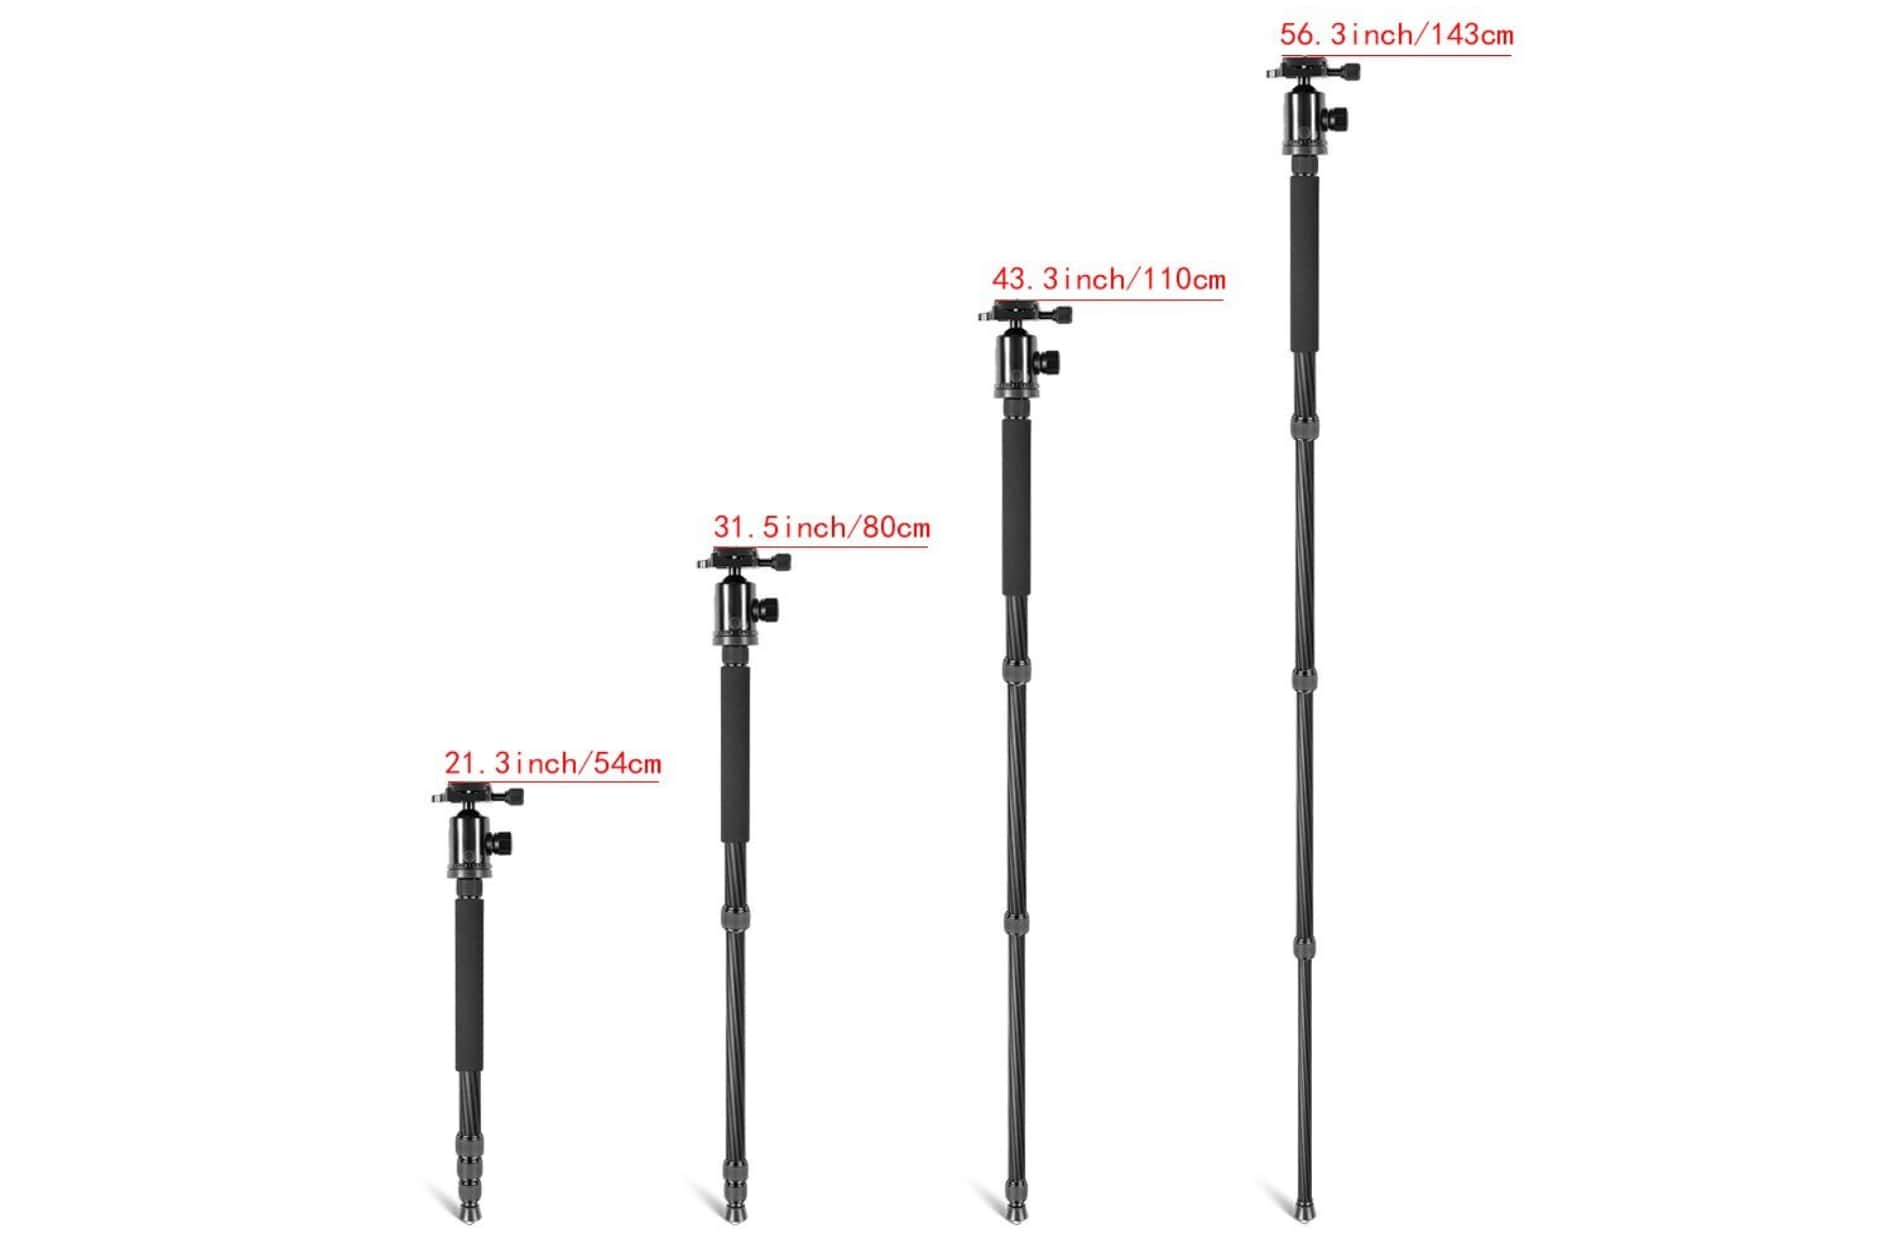 monopod feature of tripod for hiking